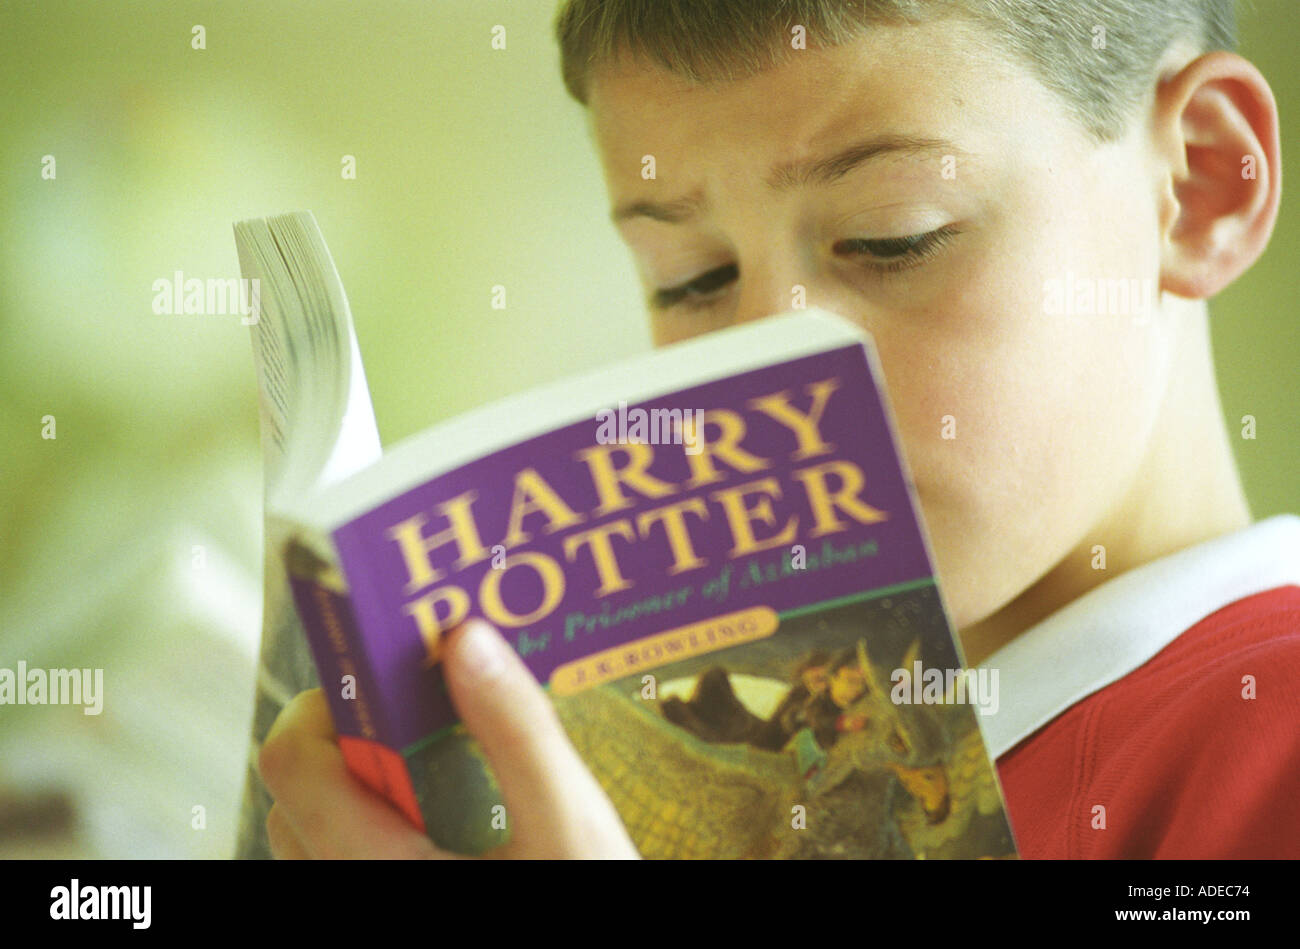 A young reader with a Harry Potter book Harry Potter and the Prisoner of Azkaban in a book shop in Birmingham UK - Stock Image